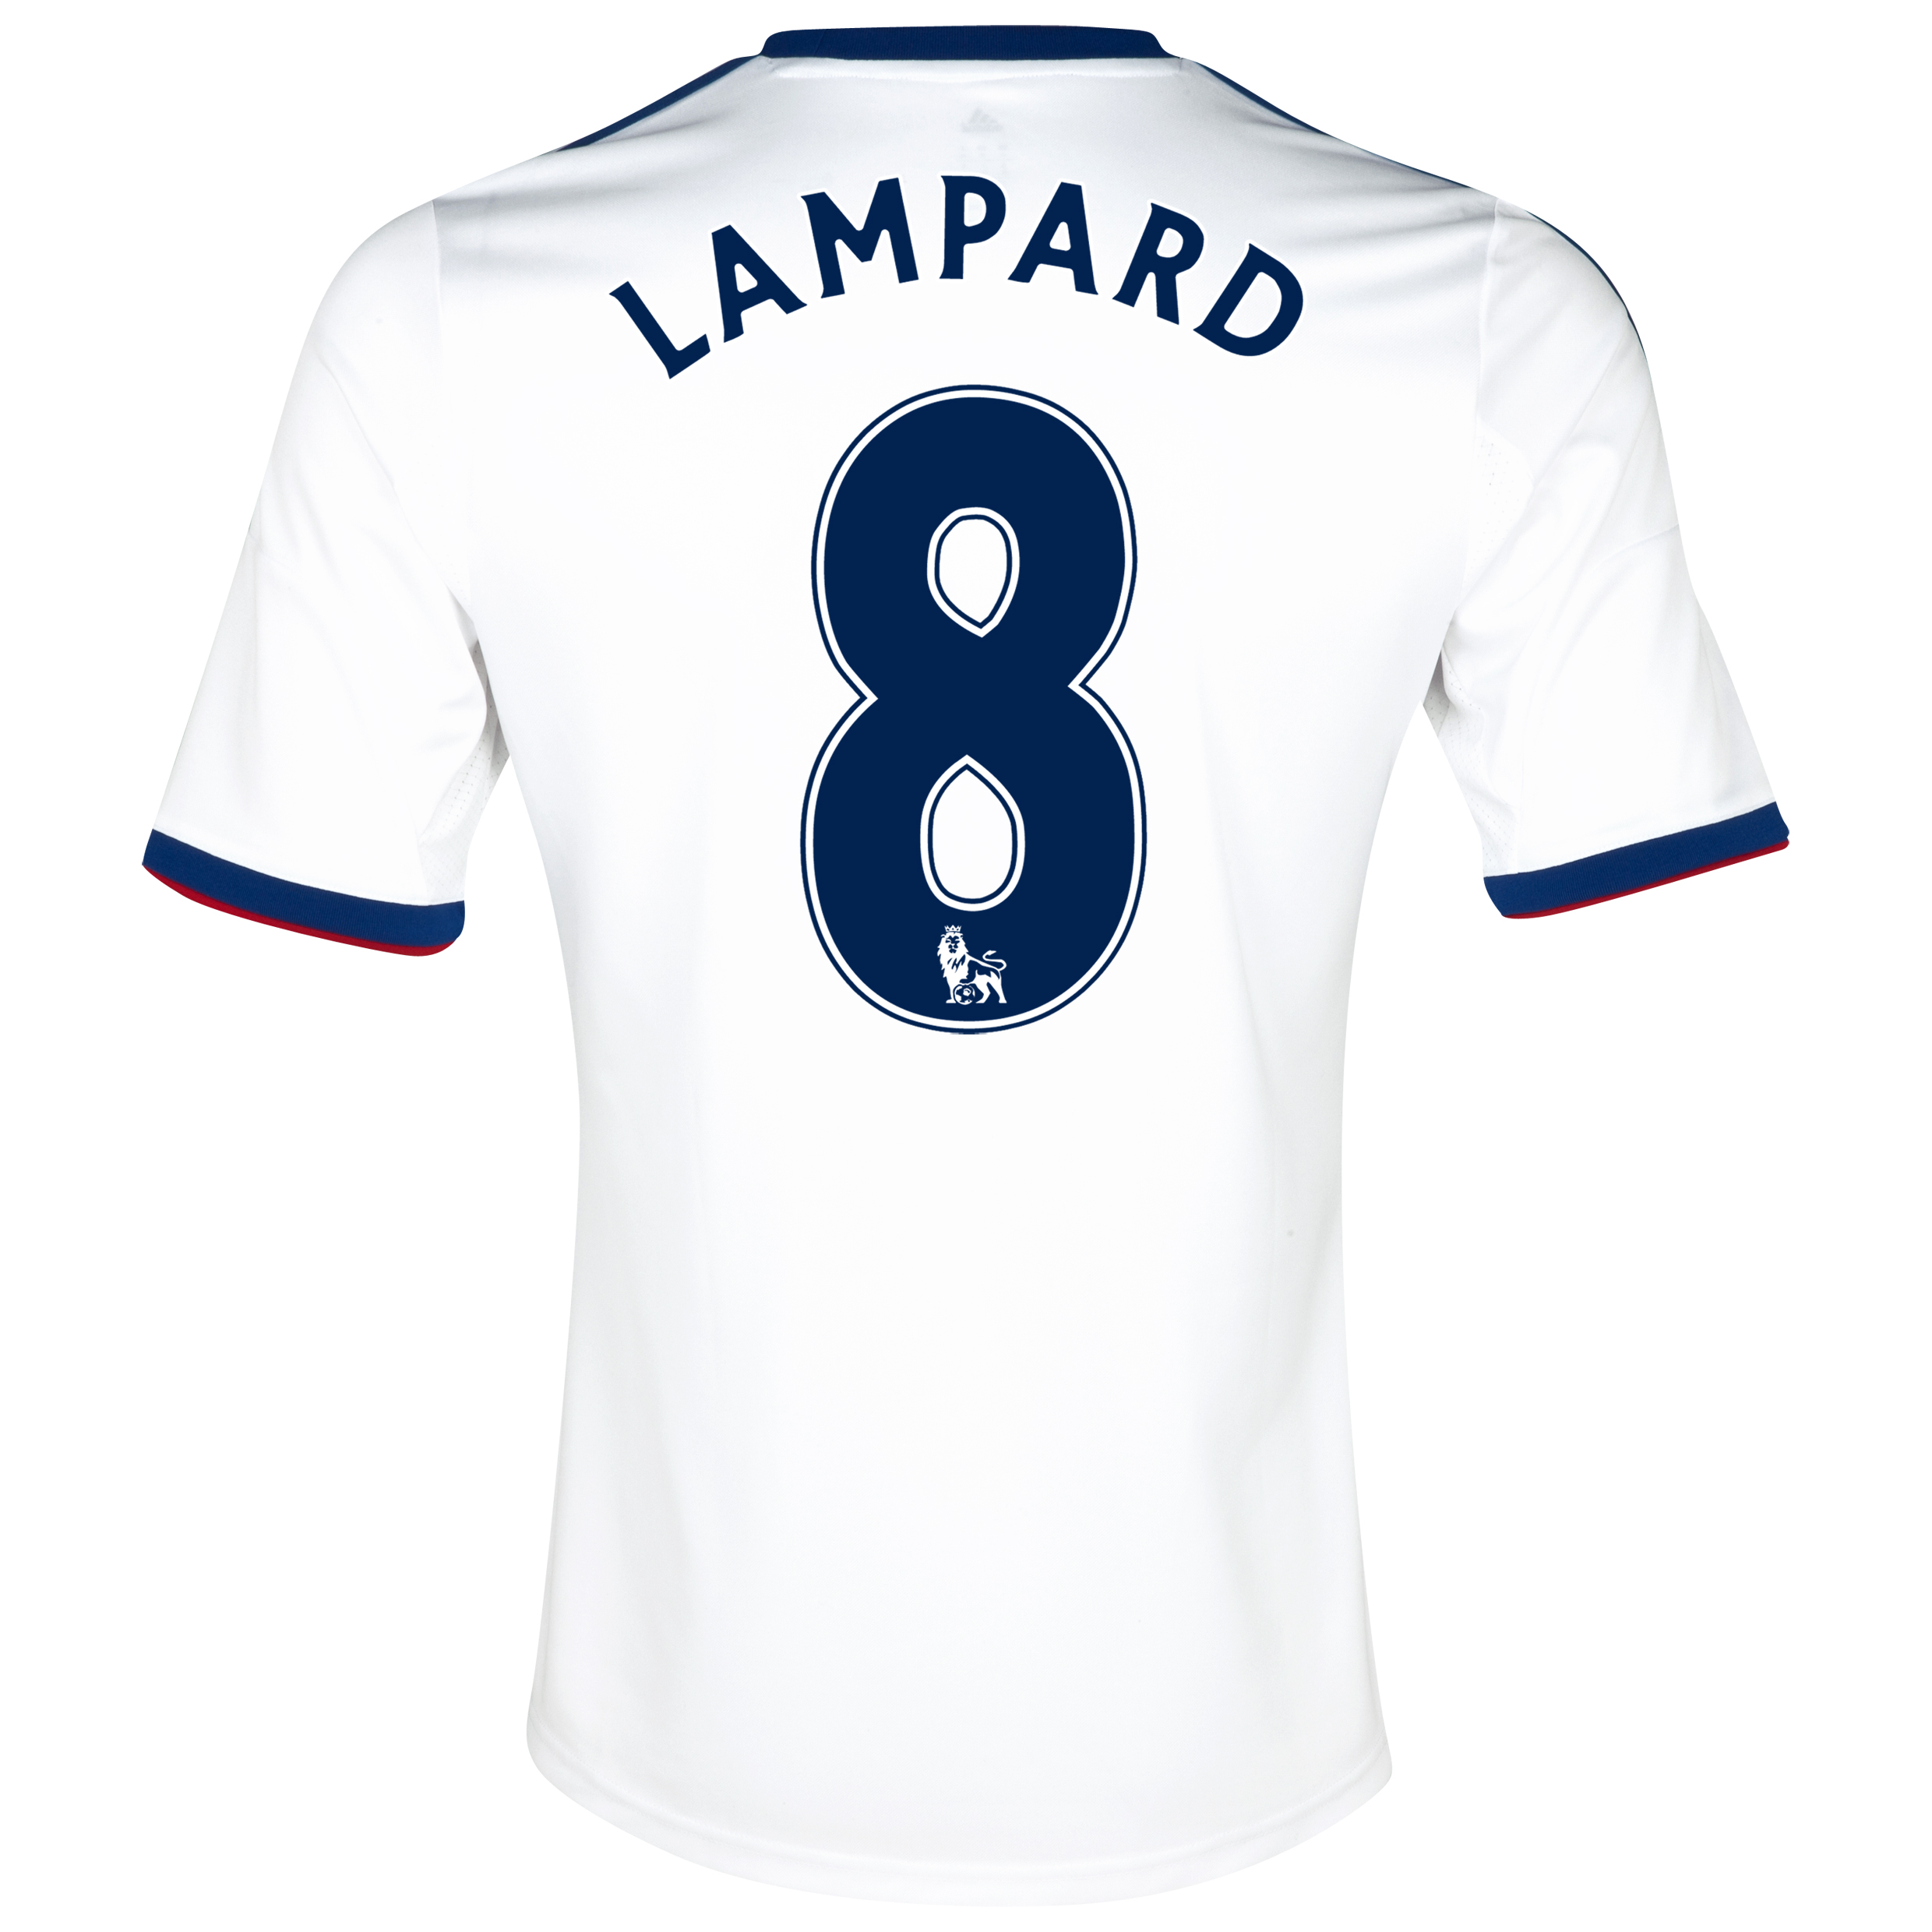 Chelsea Away Shirt 2013/14 with Lampard 8 printing